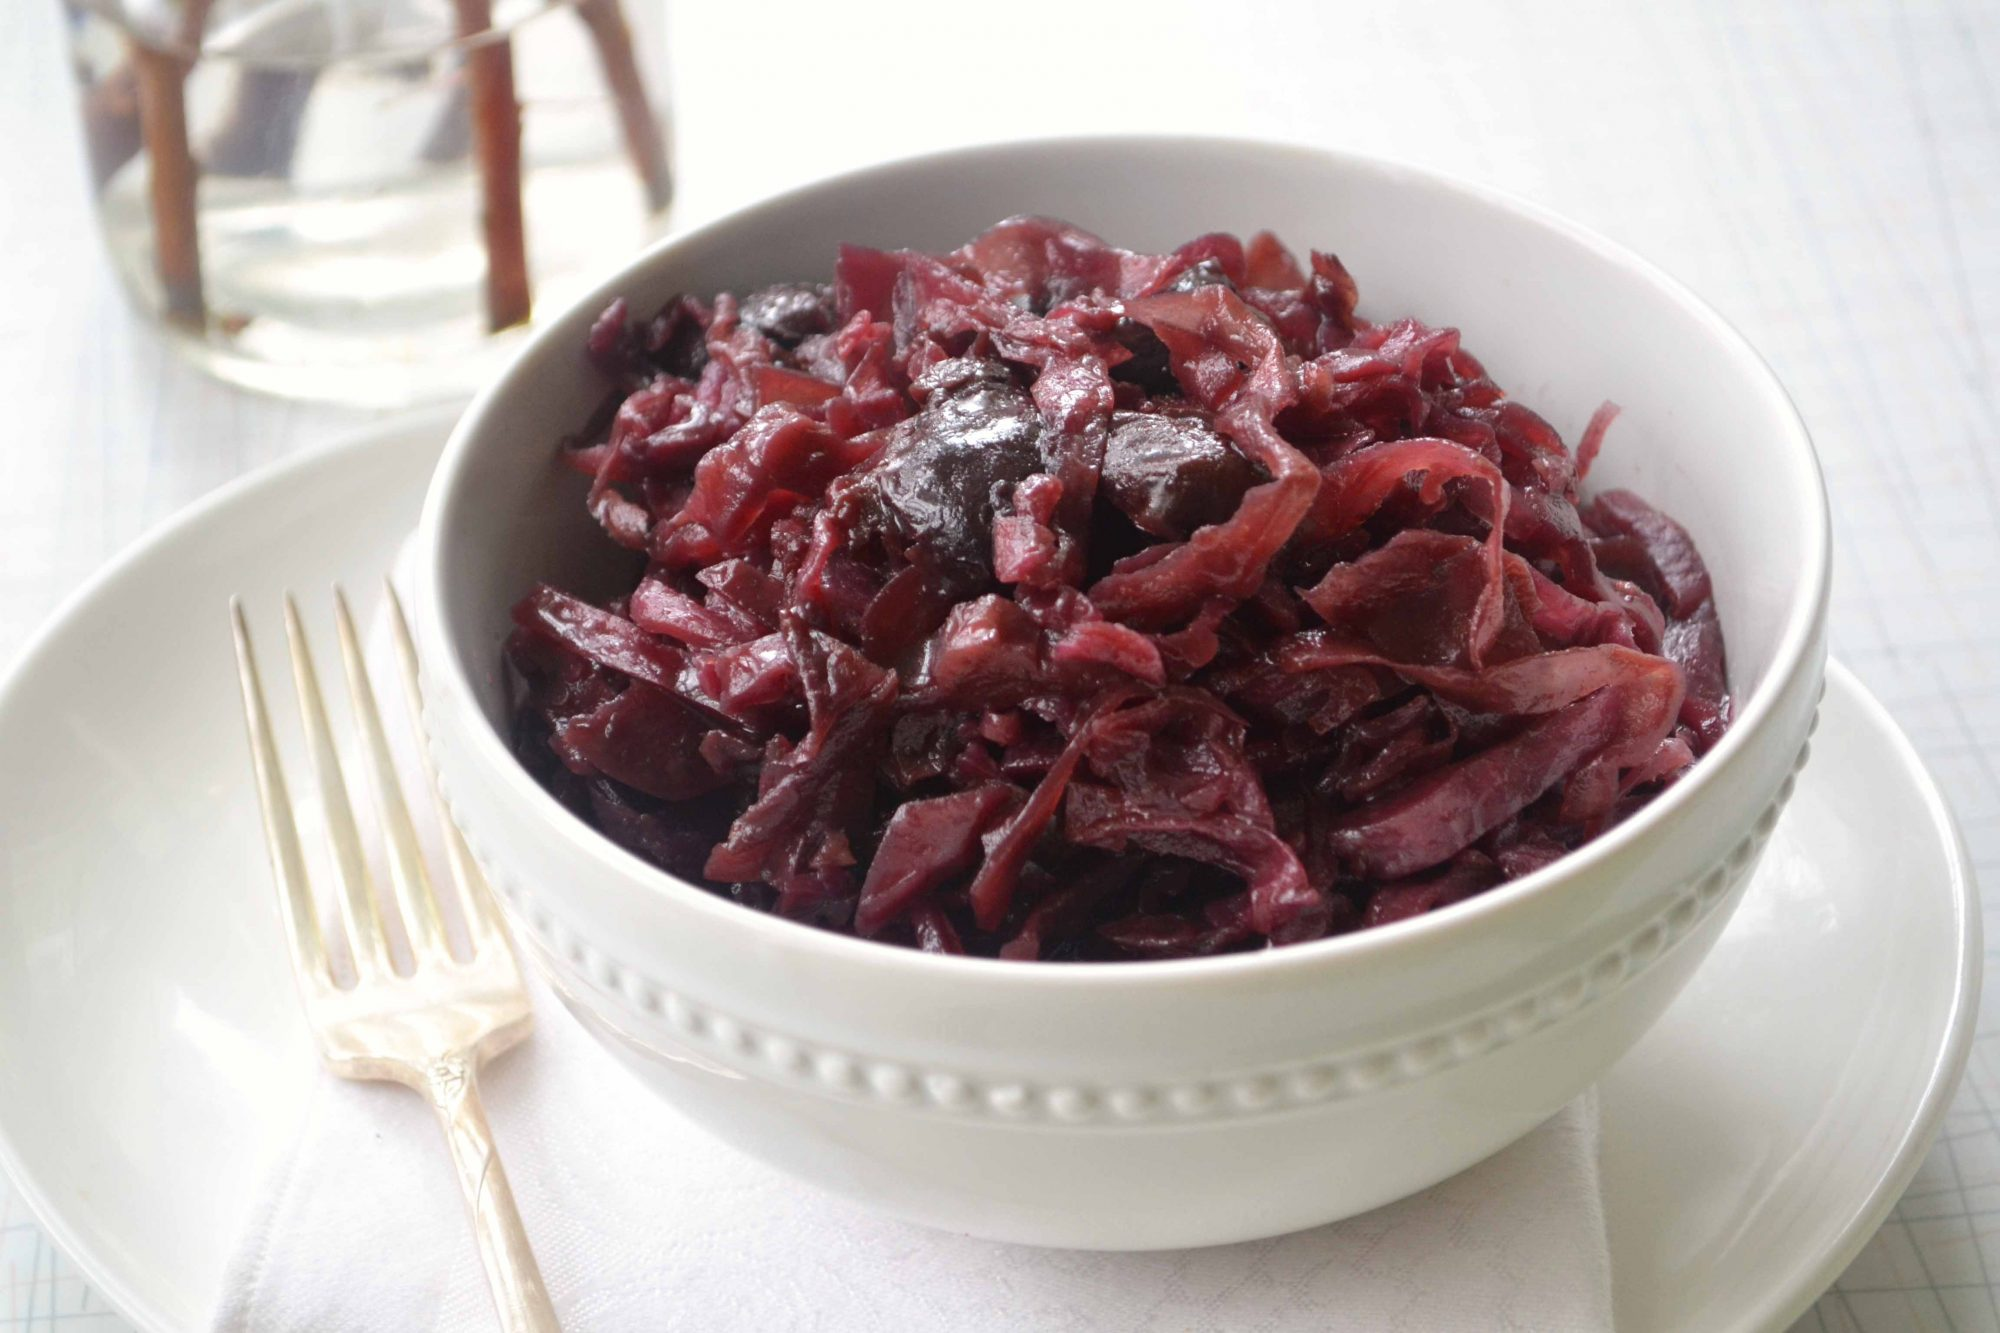 braised red cabbage recipe - photo #26